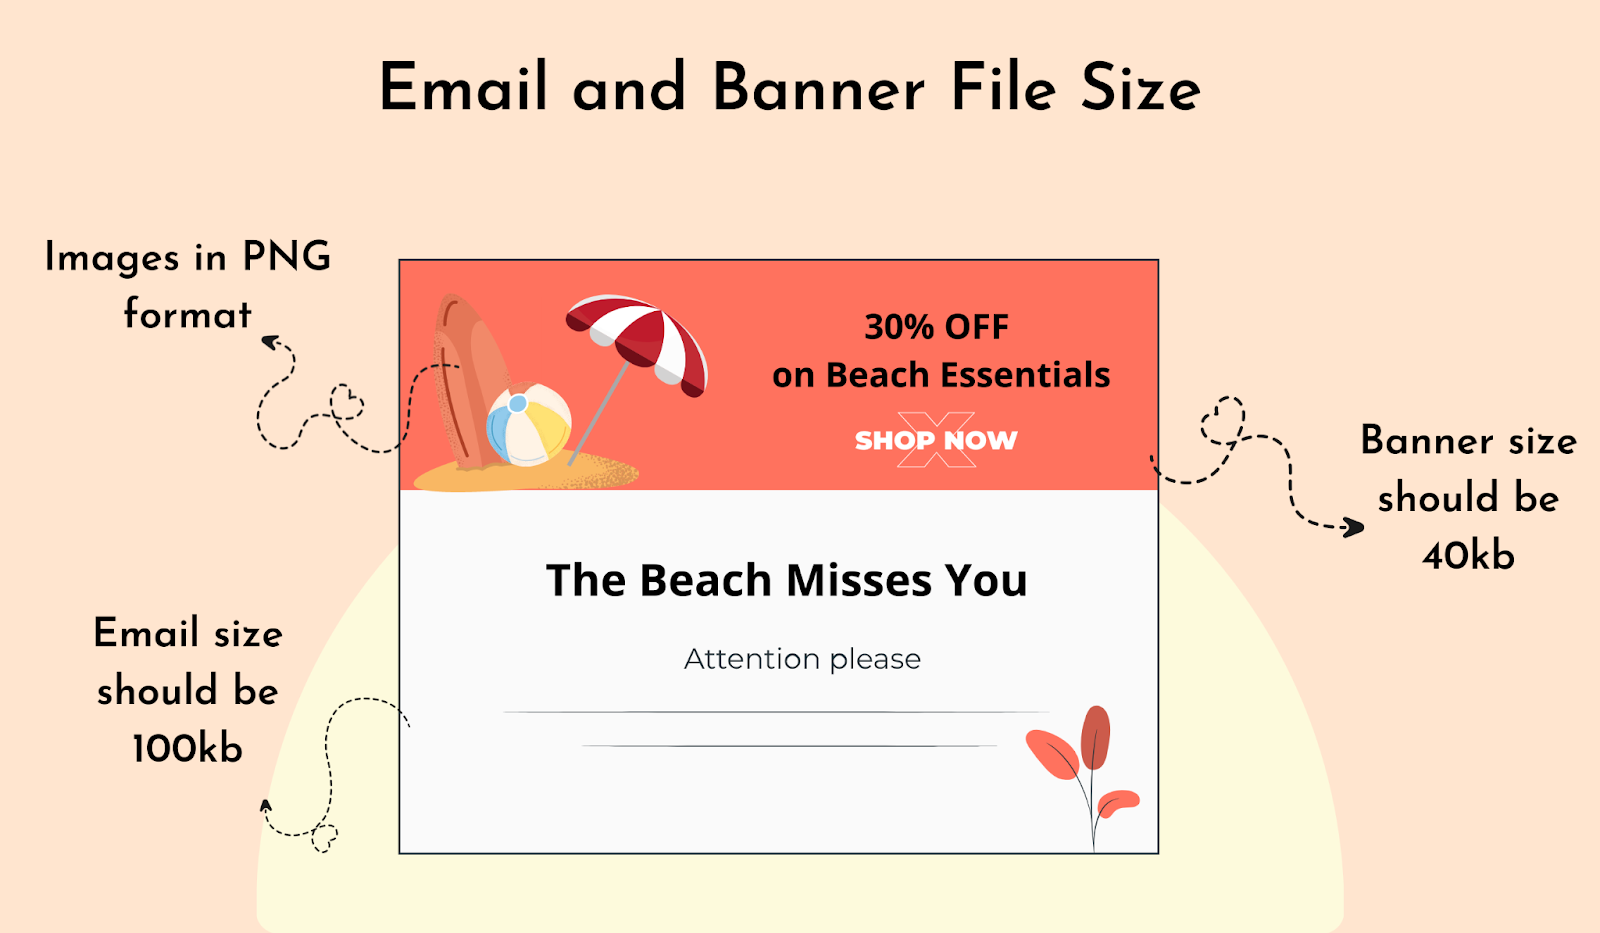 Email and banner file size